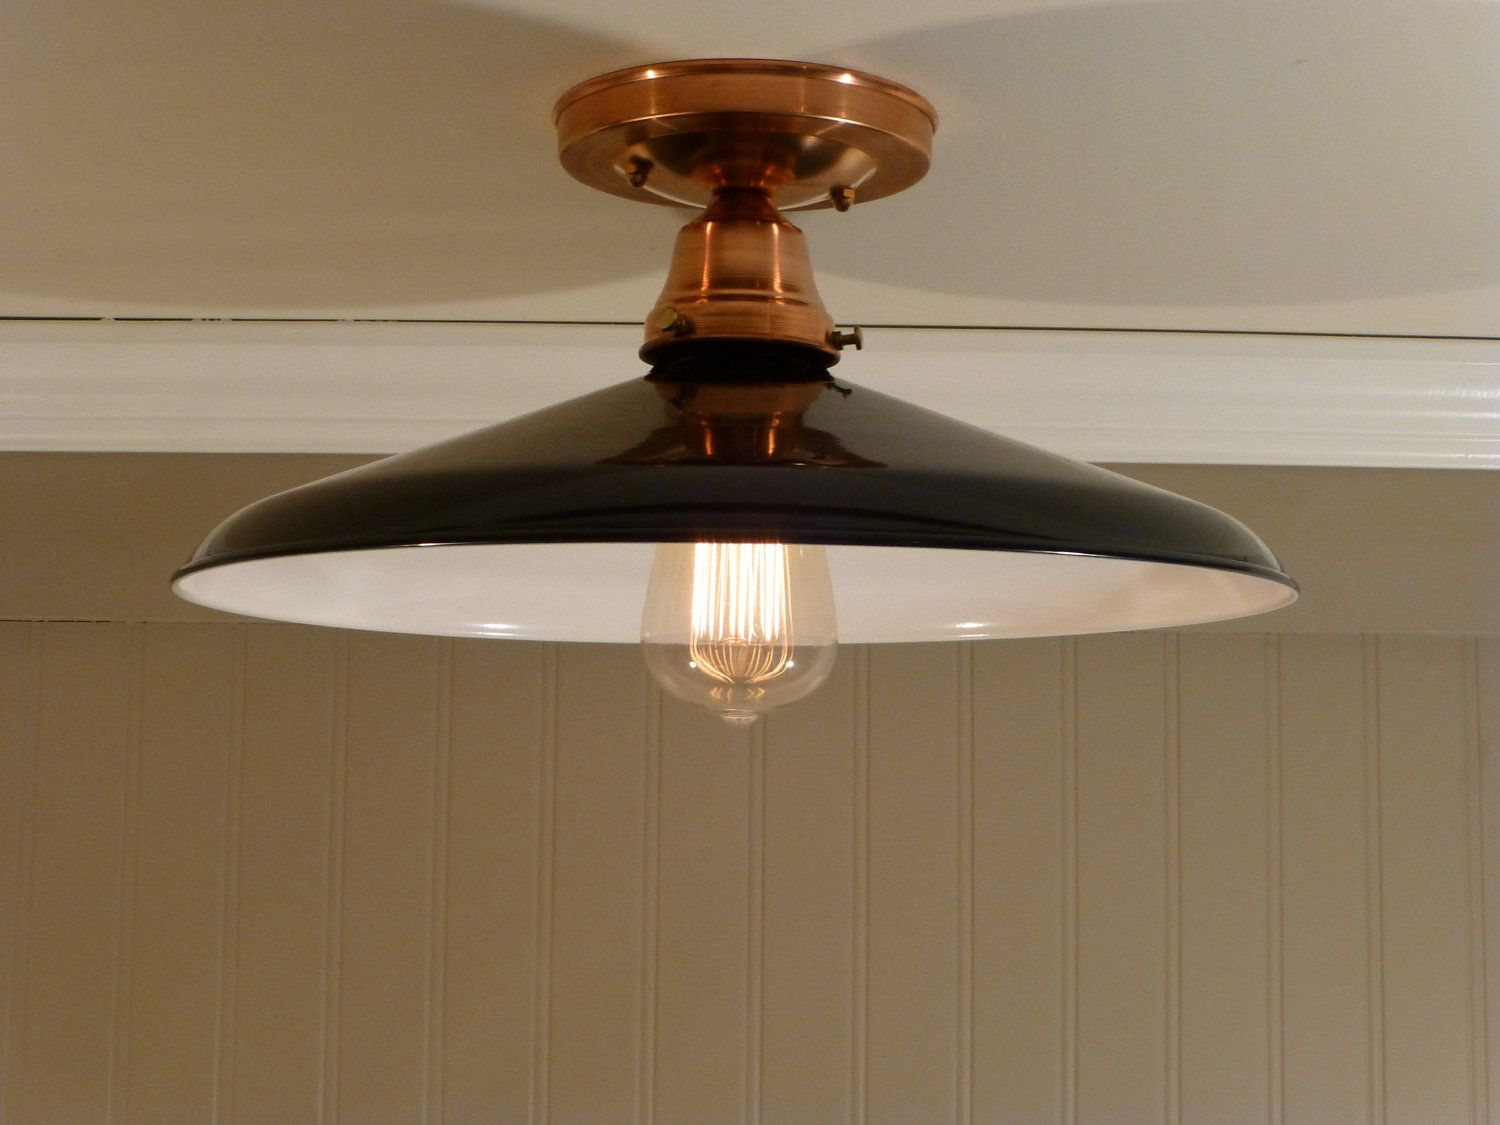 Dining room light low ceiling for the home low ceiling